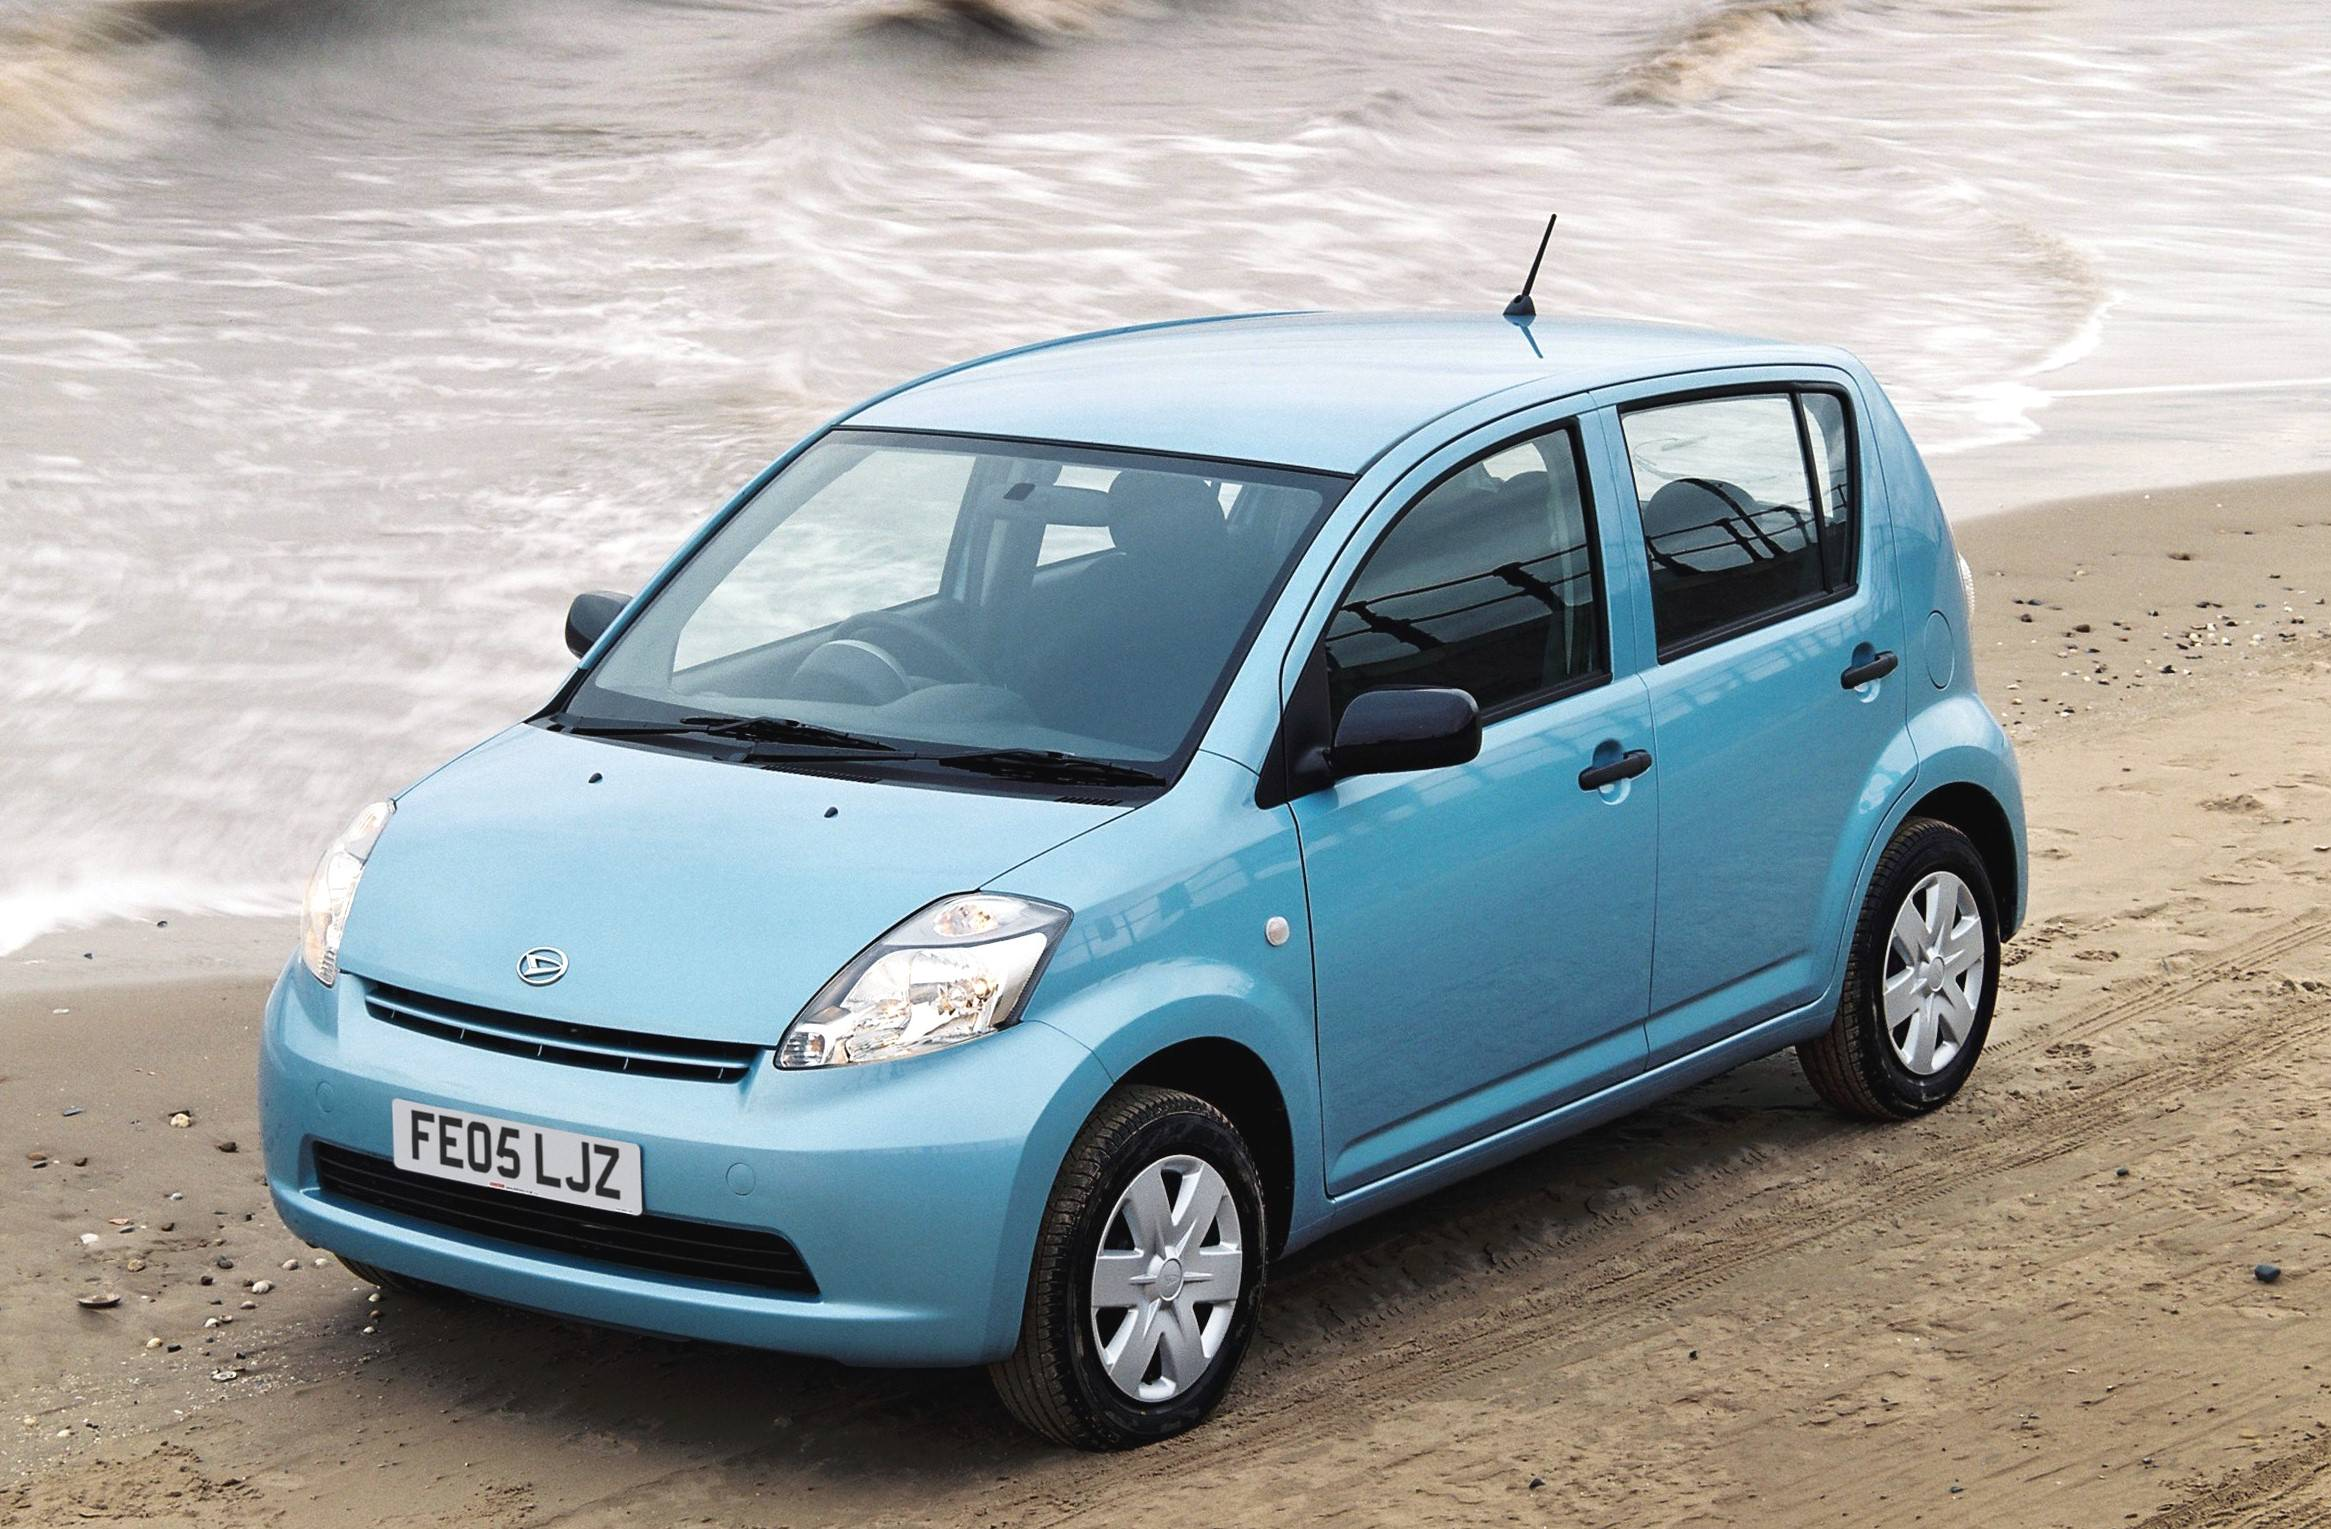 image of a blue daihatsu car exterior